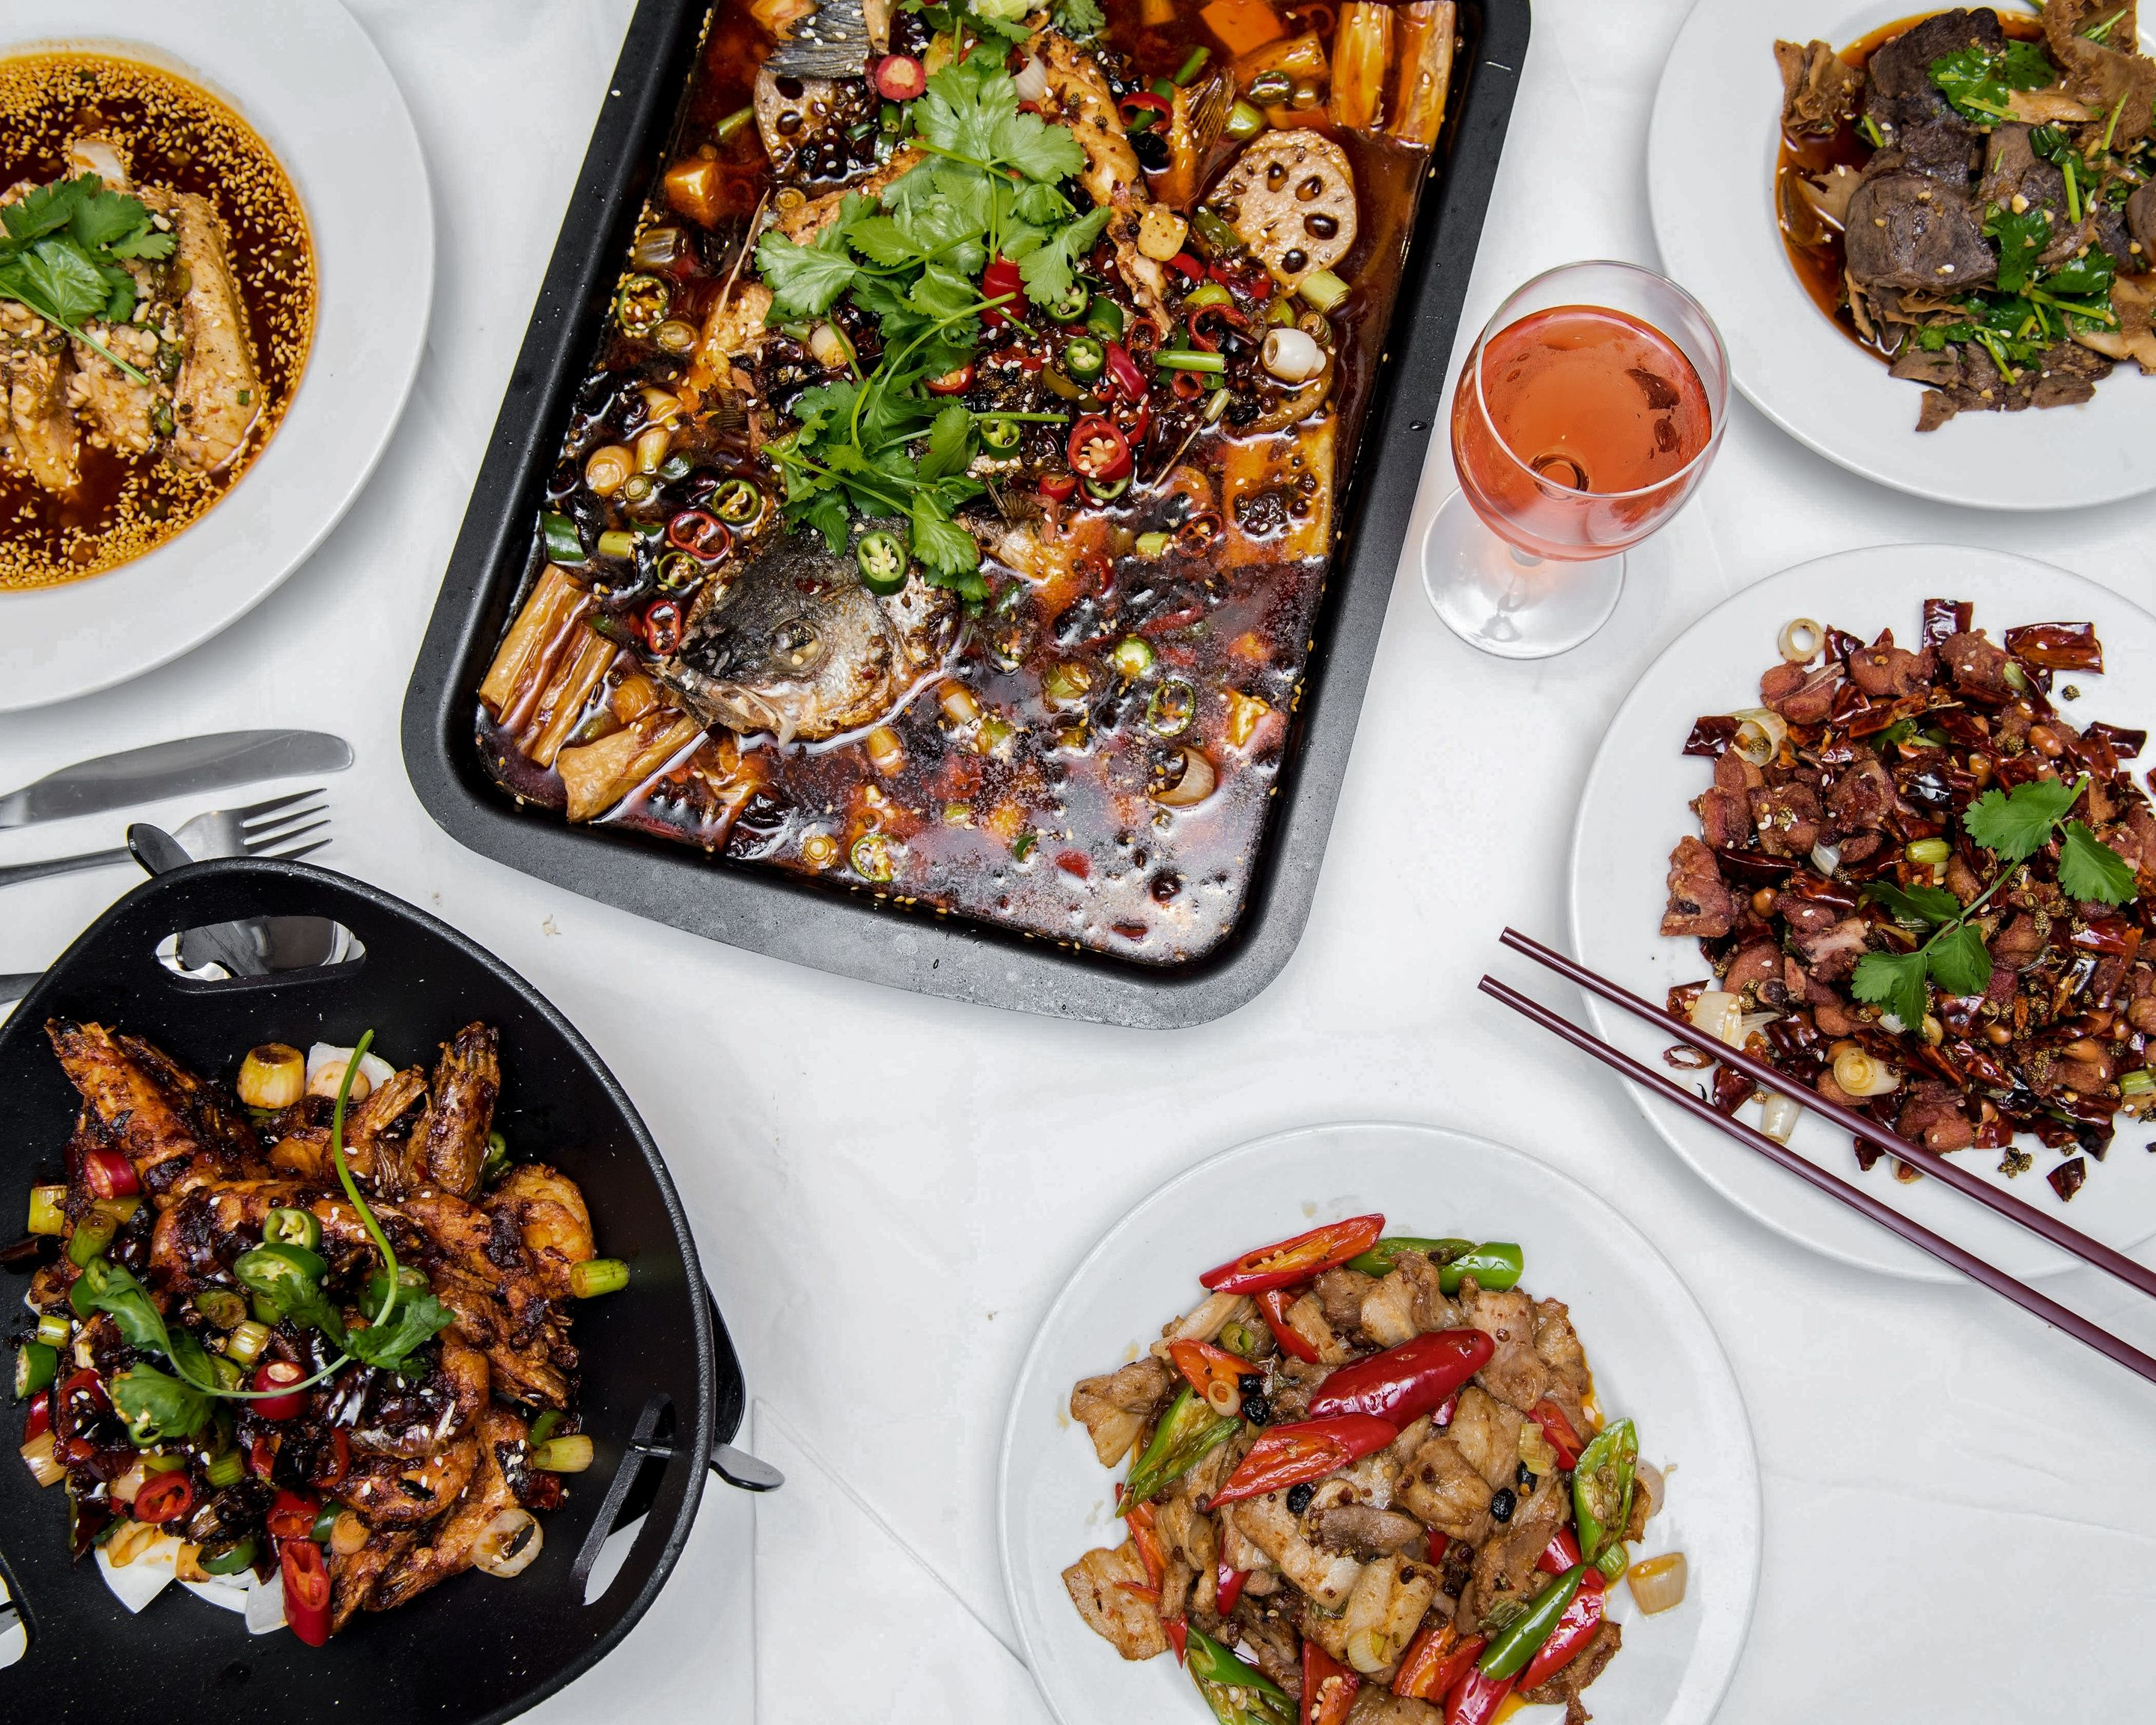 Marvelous Kung Fu Oriental Buffet Delivery London Uber Eats Download Free Architecture Designs Scobabritishbridgeorg